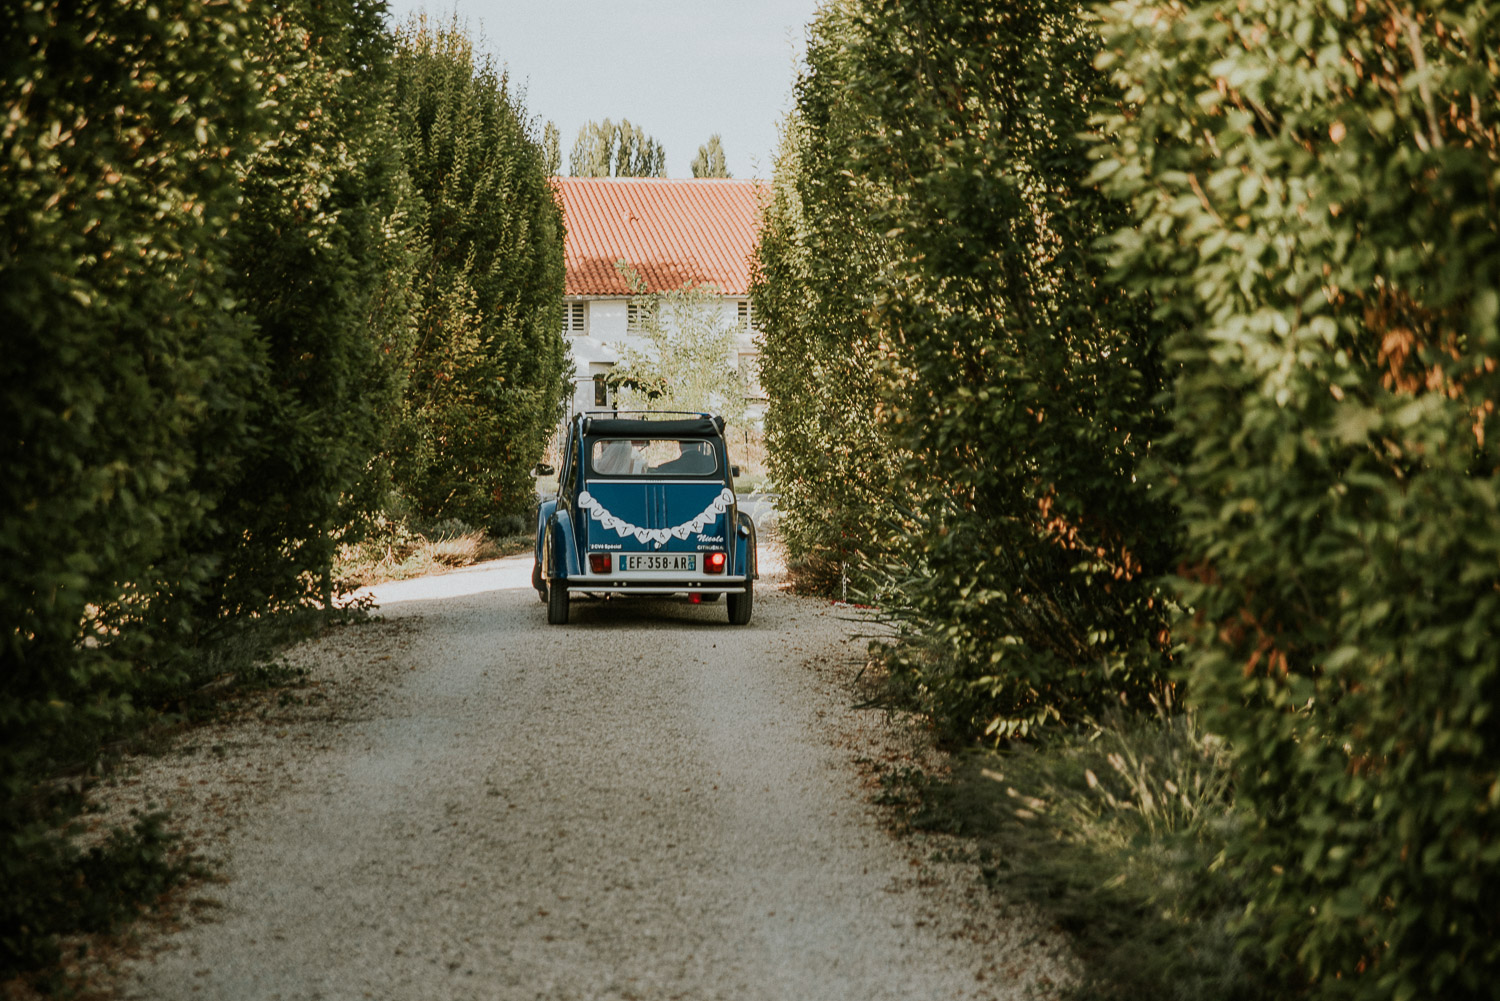 dordogne_eymet_wedding_france_katy_webb_photography_france_UK76